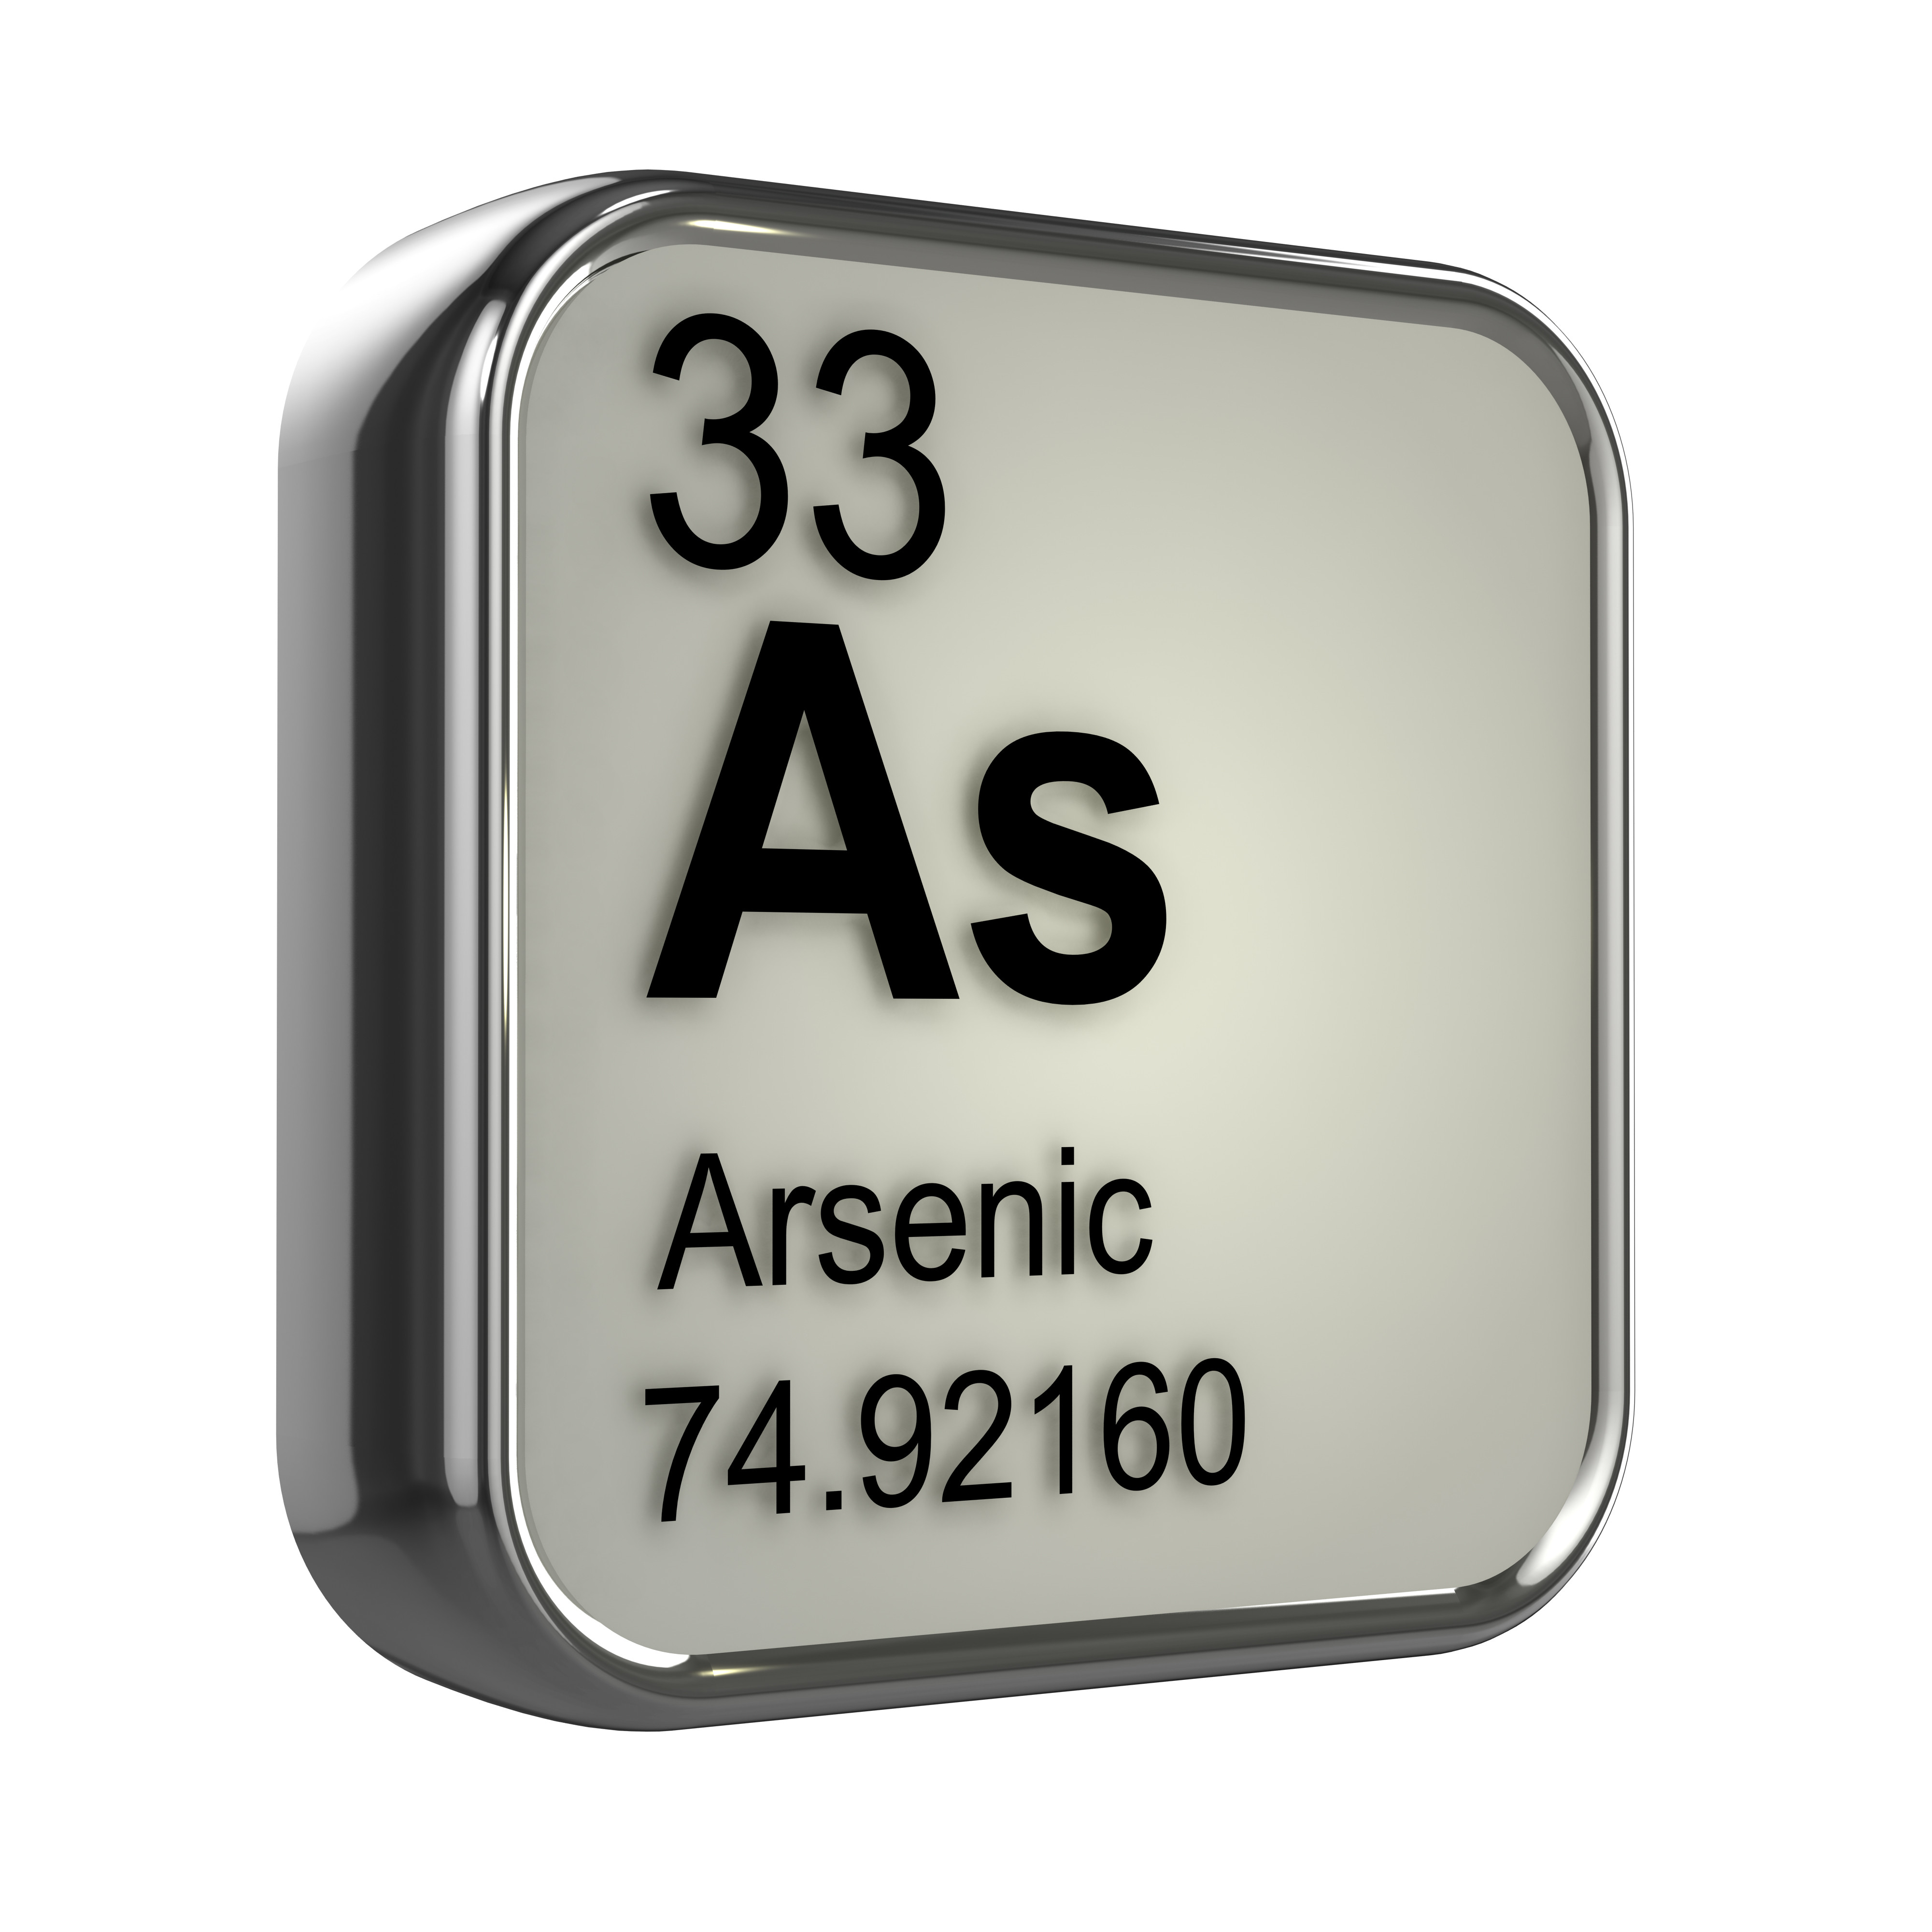 Sources of Arsenic Exposure